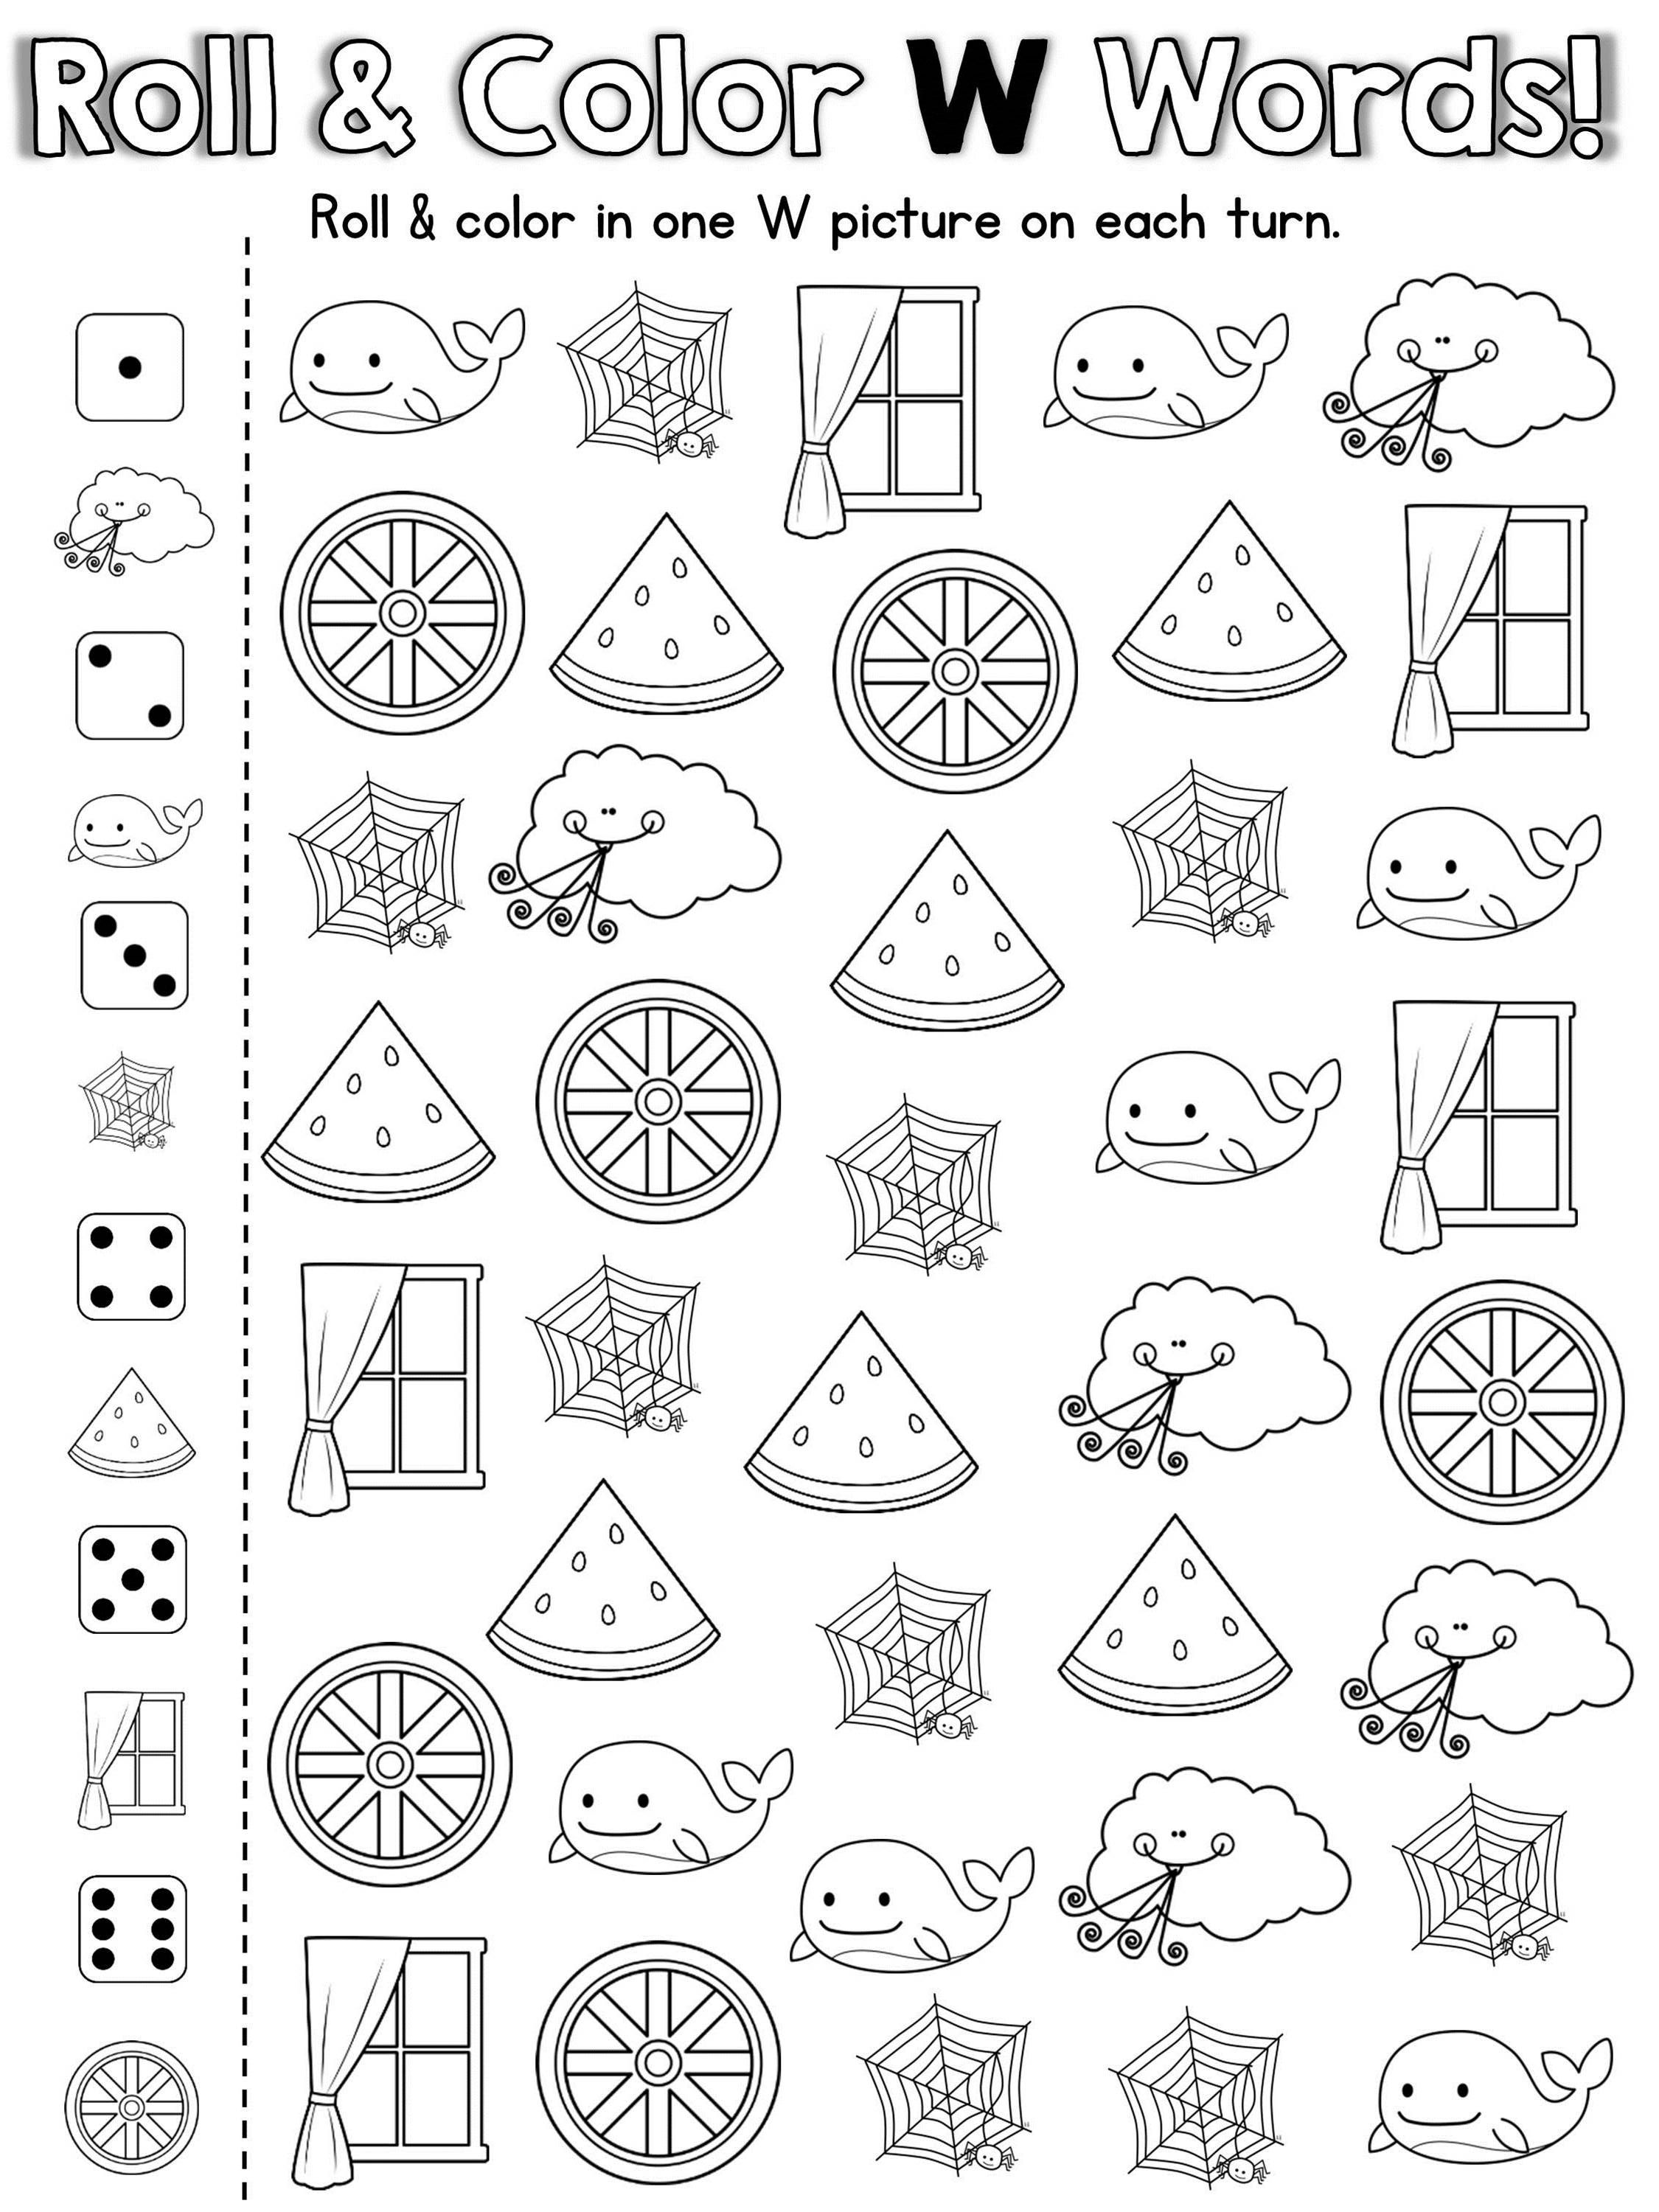 Coloring worksheets phonics - 20 Fun Ready To Print Games To Practice The Letter W Awesome For Rti